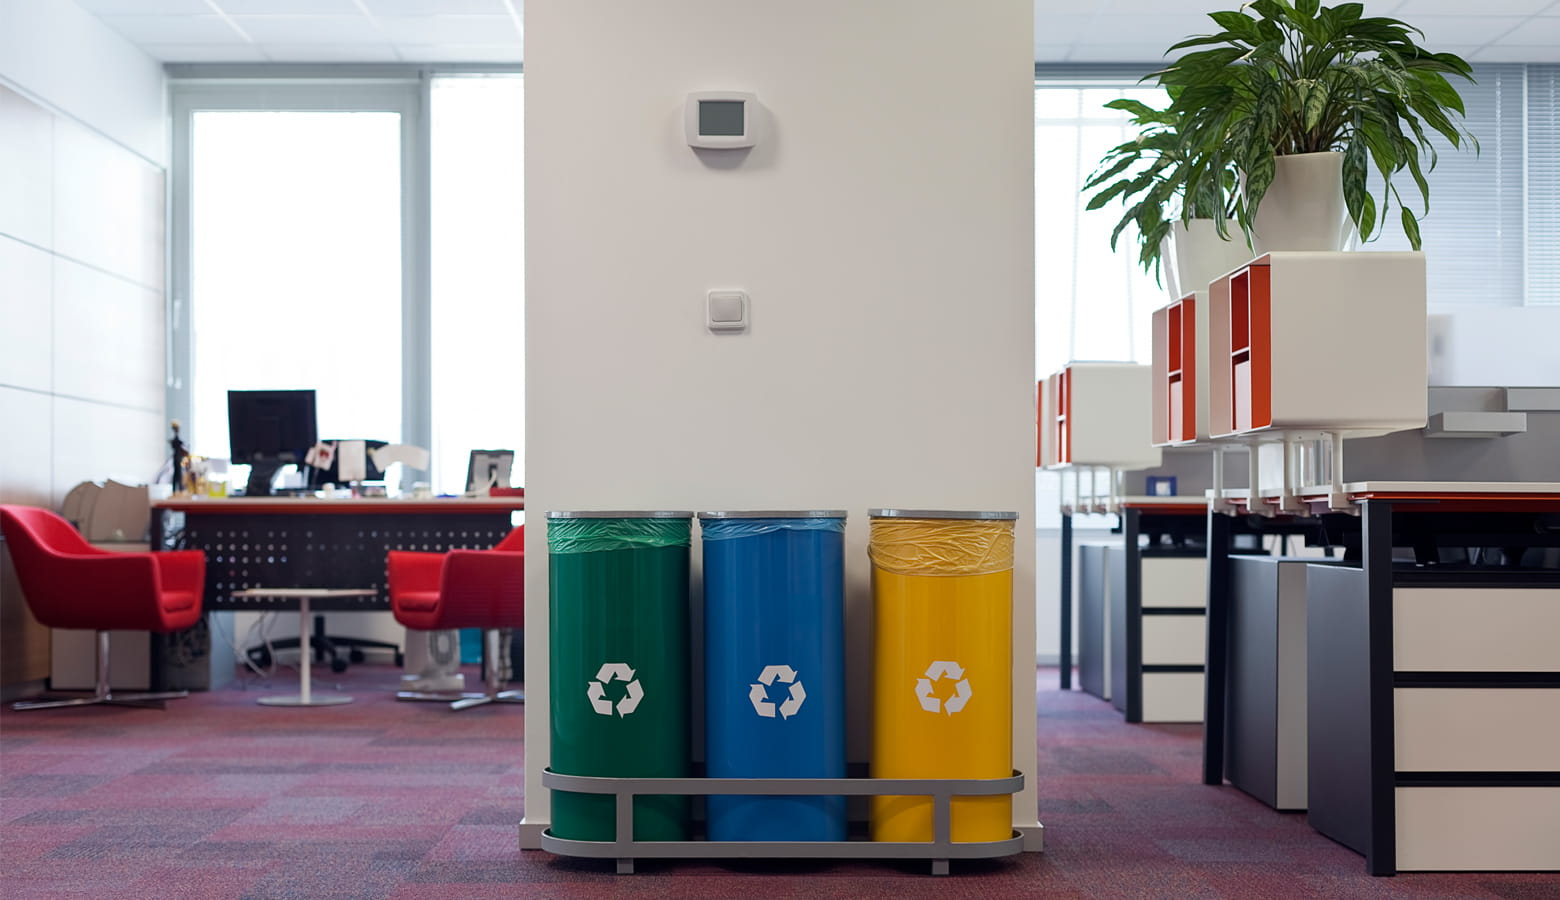 Recycling bins in an office environment